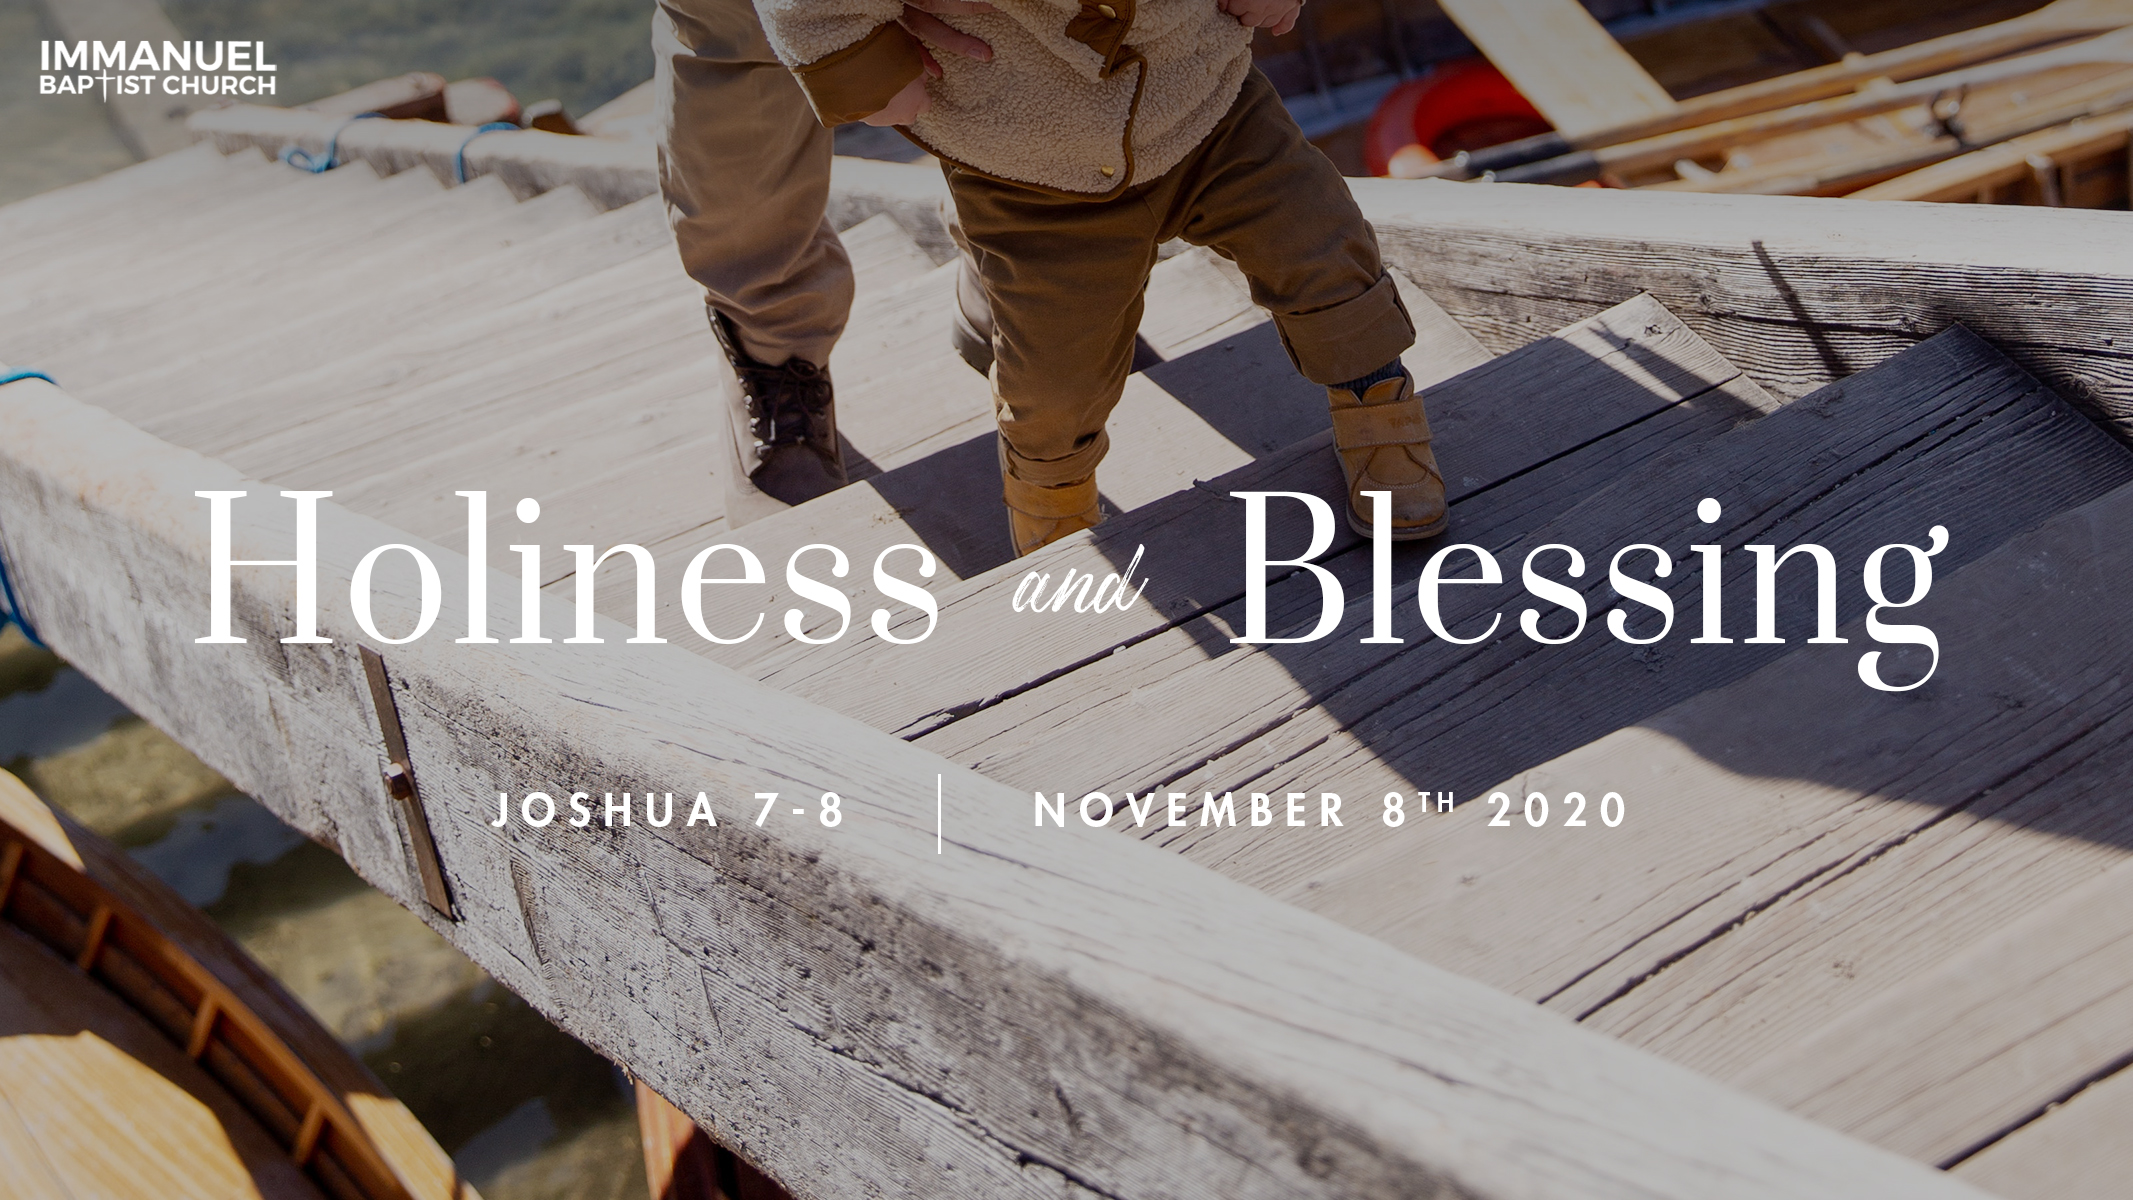 Holiness and Blessing Image